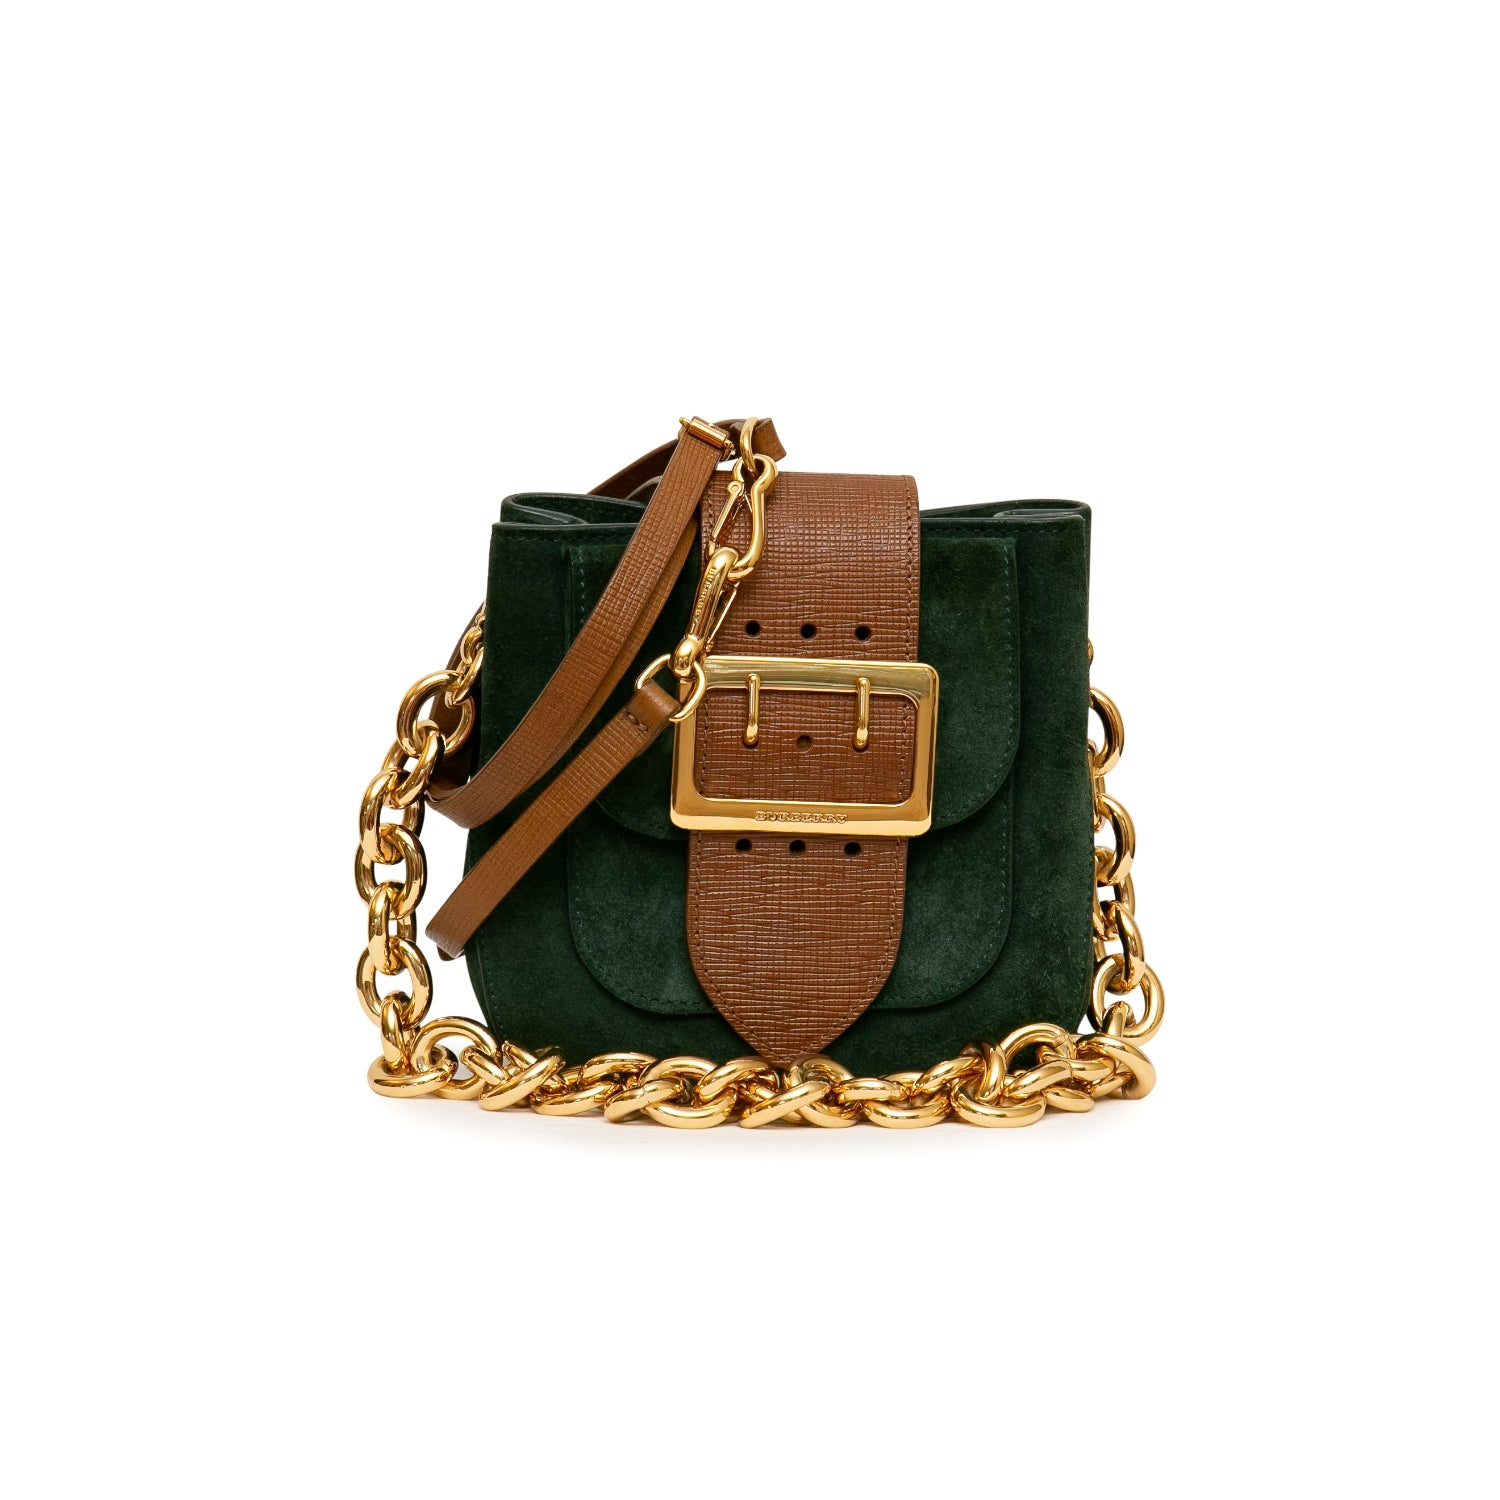 Burberry Prorsum Square Crossbody Buckle Bag